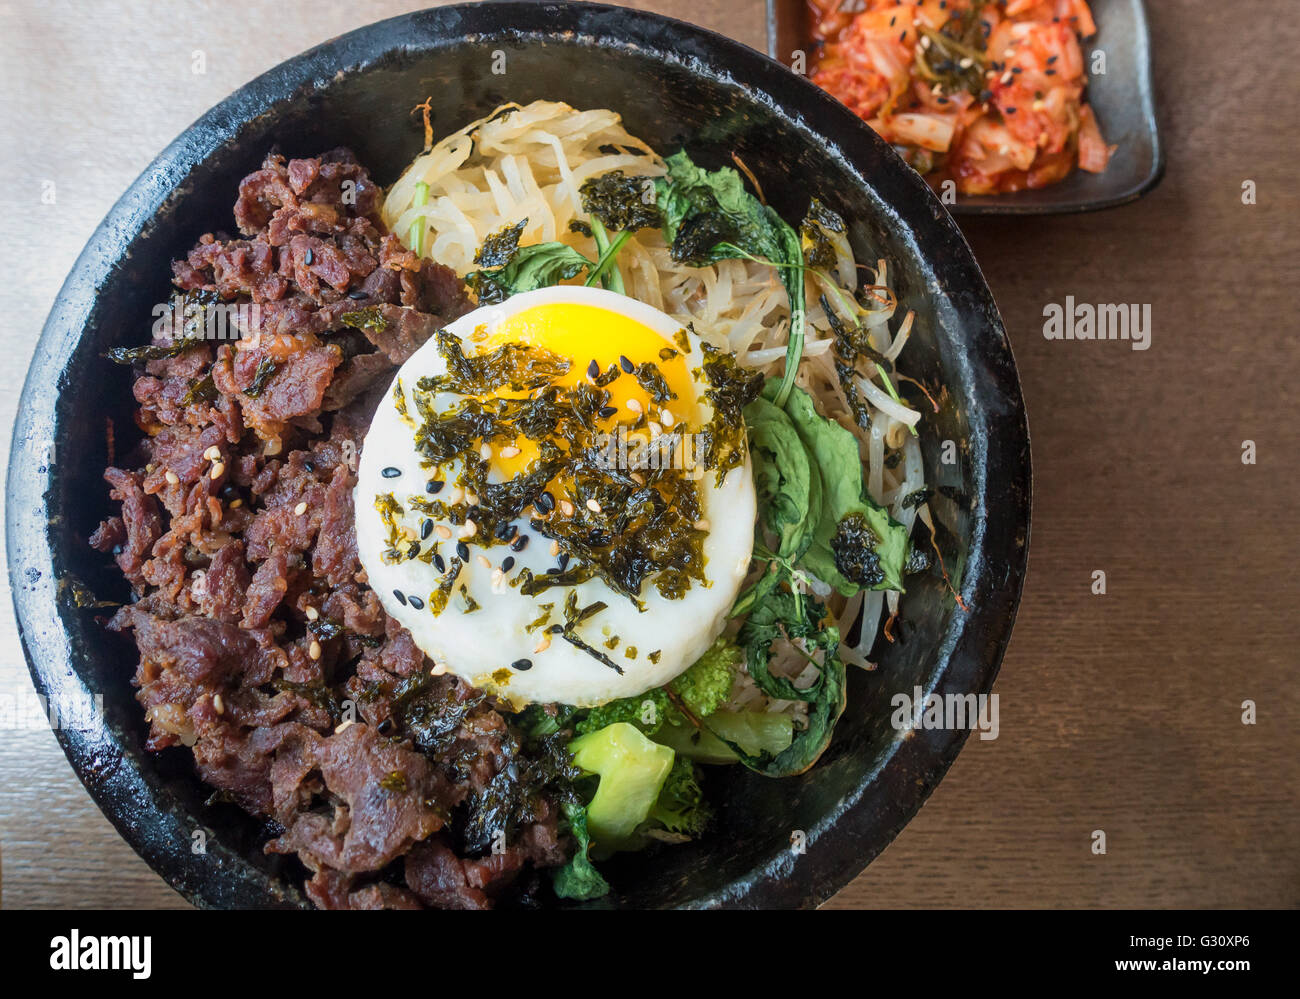 Korean Cuisine Bibimbap Kimchi Beef Greens Rice Noodles And An Stock Photo Alamy